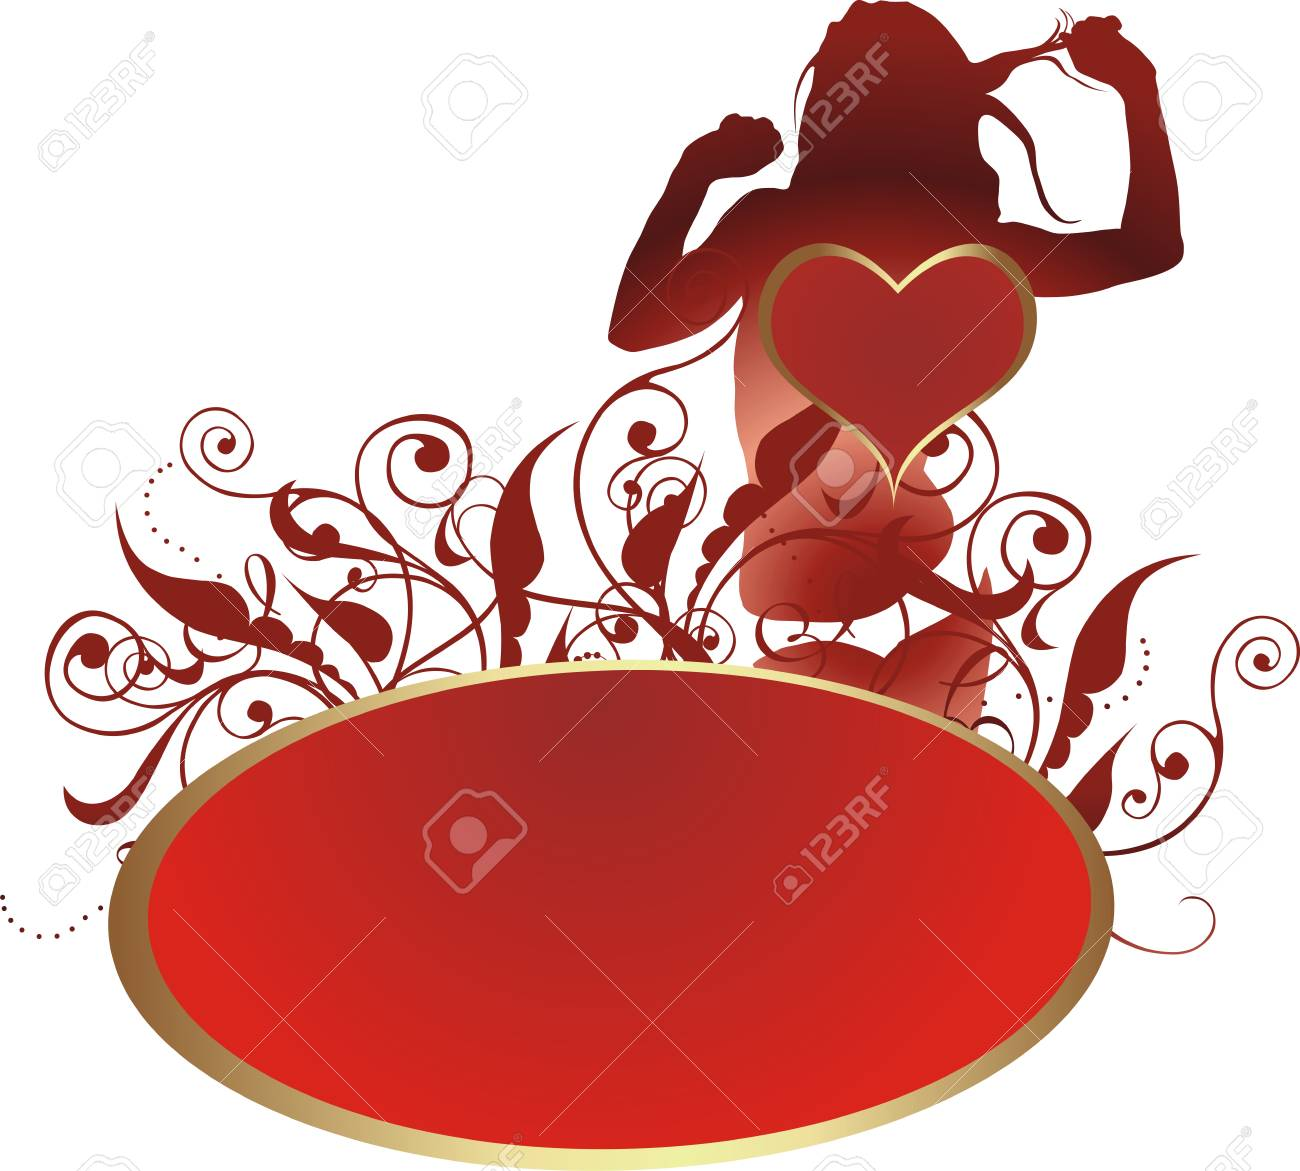 Heart against a silhouette of the young girl and a vegetative ornament Stock Vector - 4022194